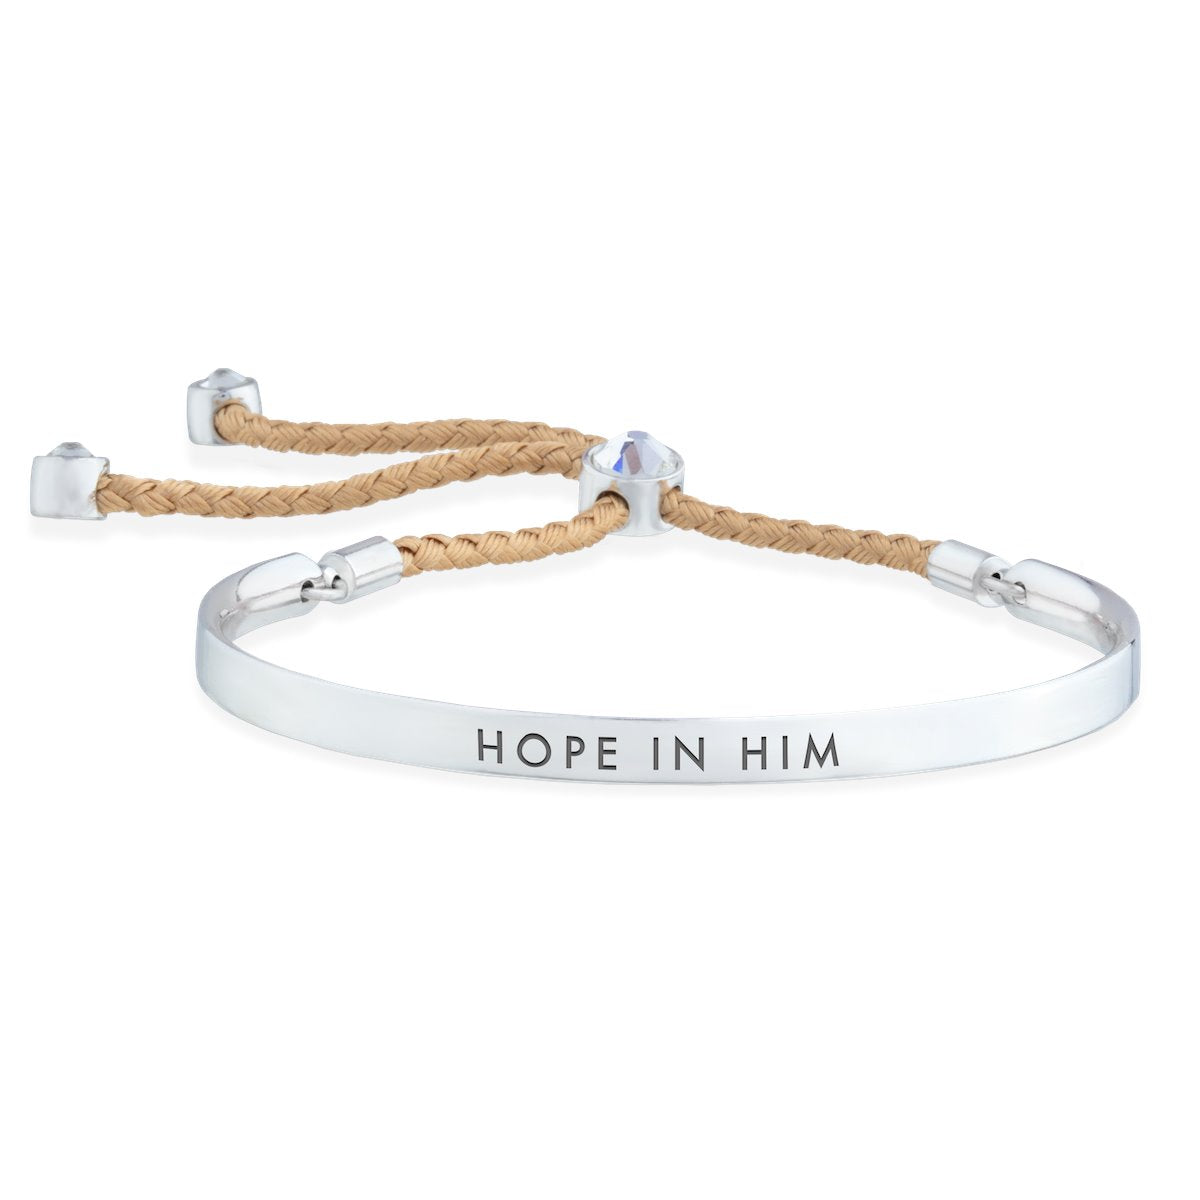 Hope in Him – Words of Empowerment Bracelet